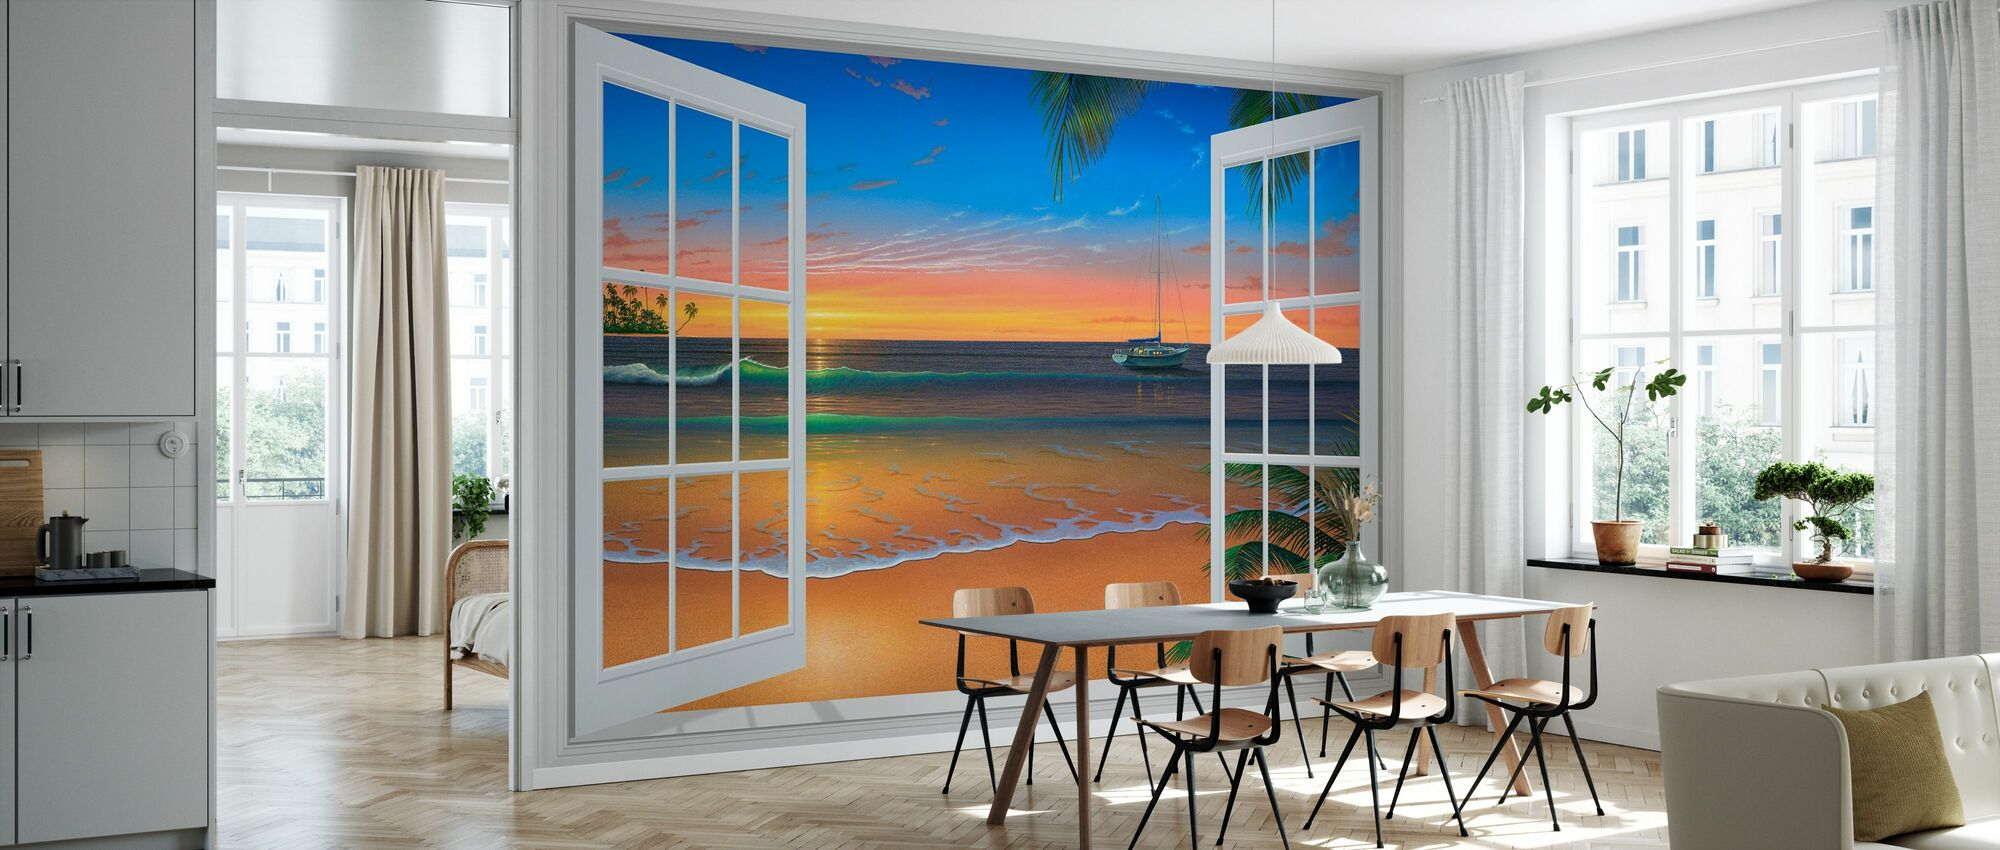 Sunset Through Window - Wallpaper - Kitchen